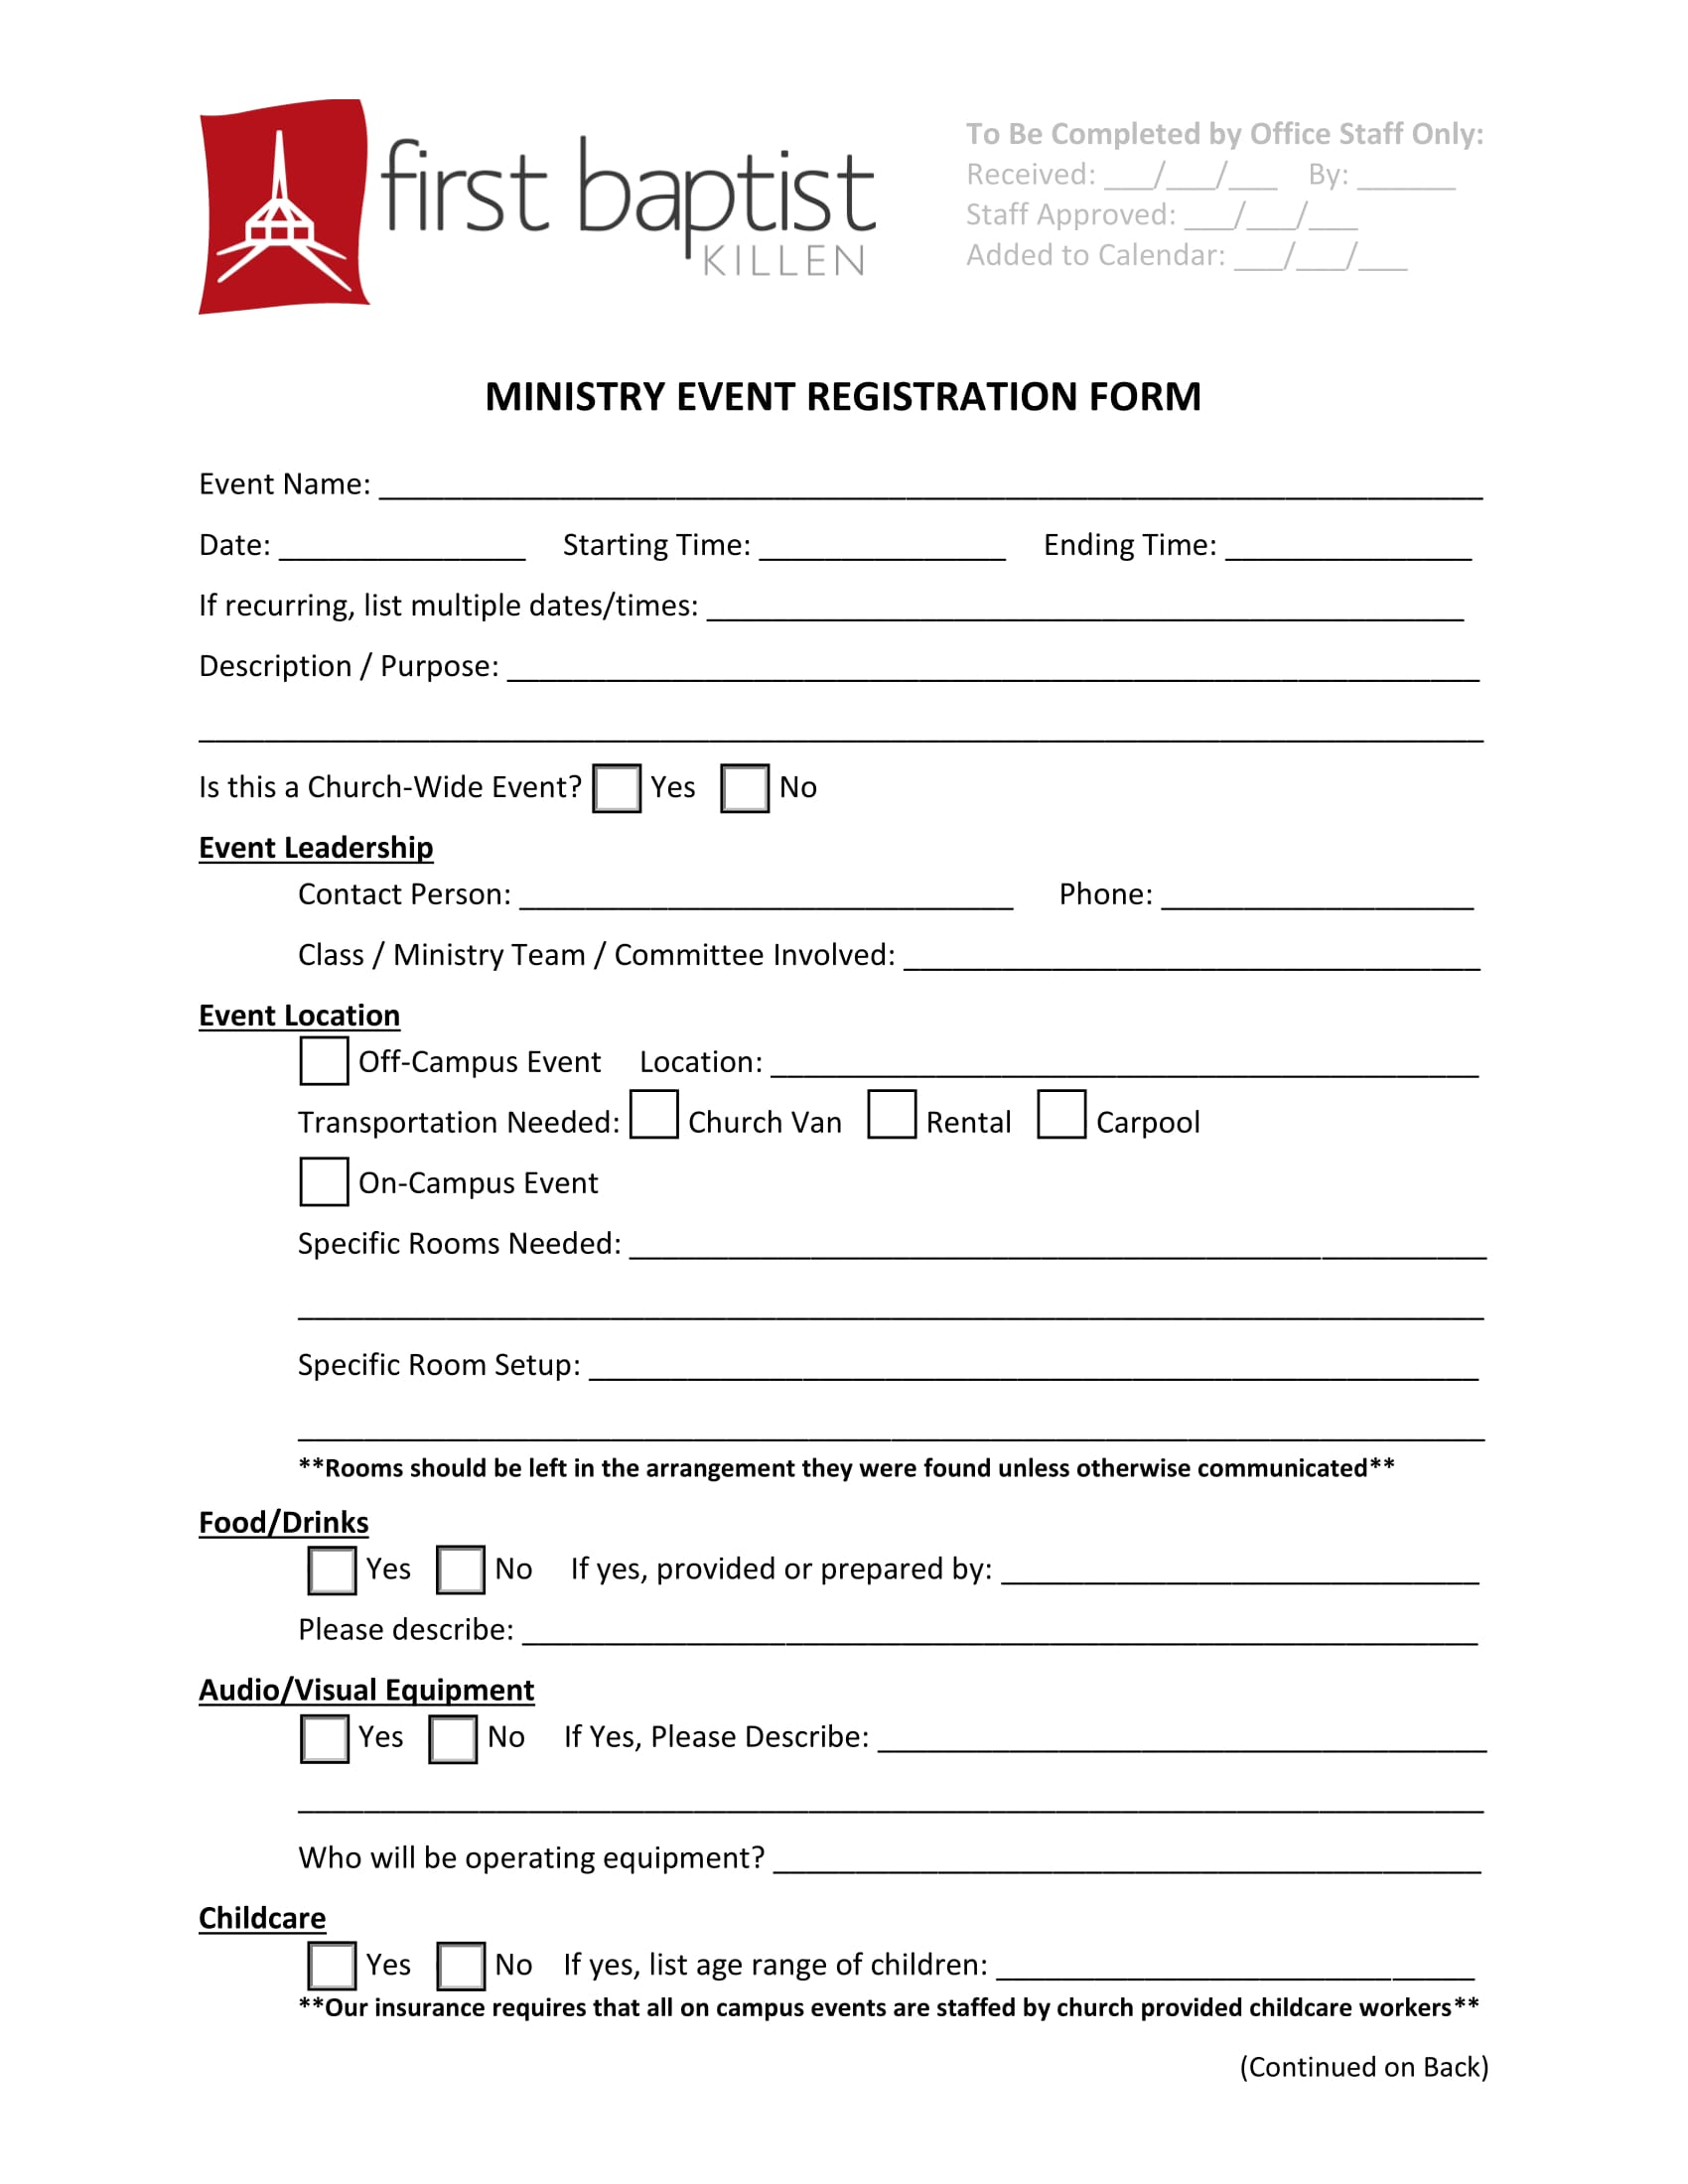 ministry event registration form 1